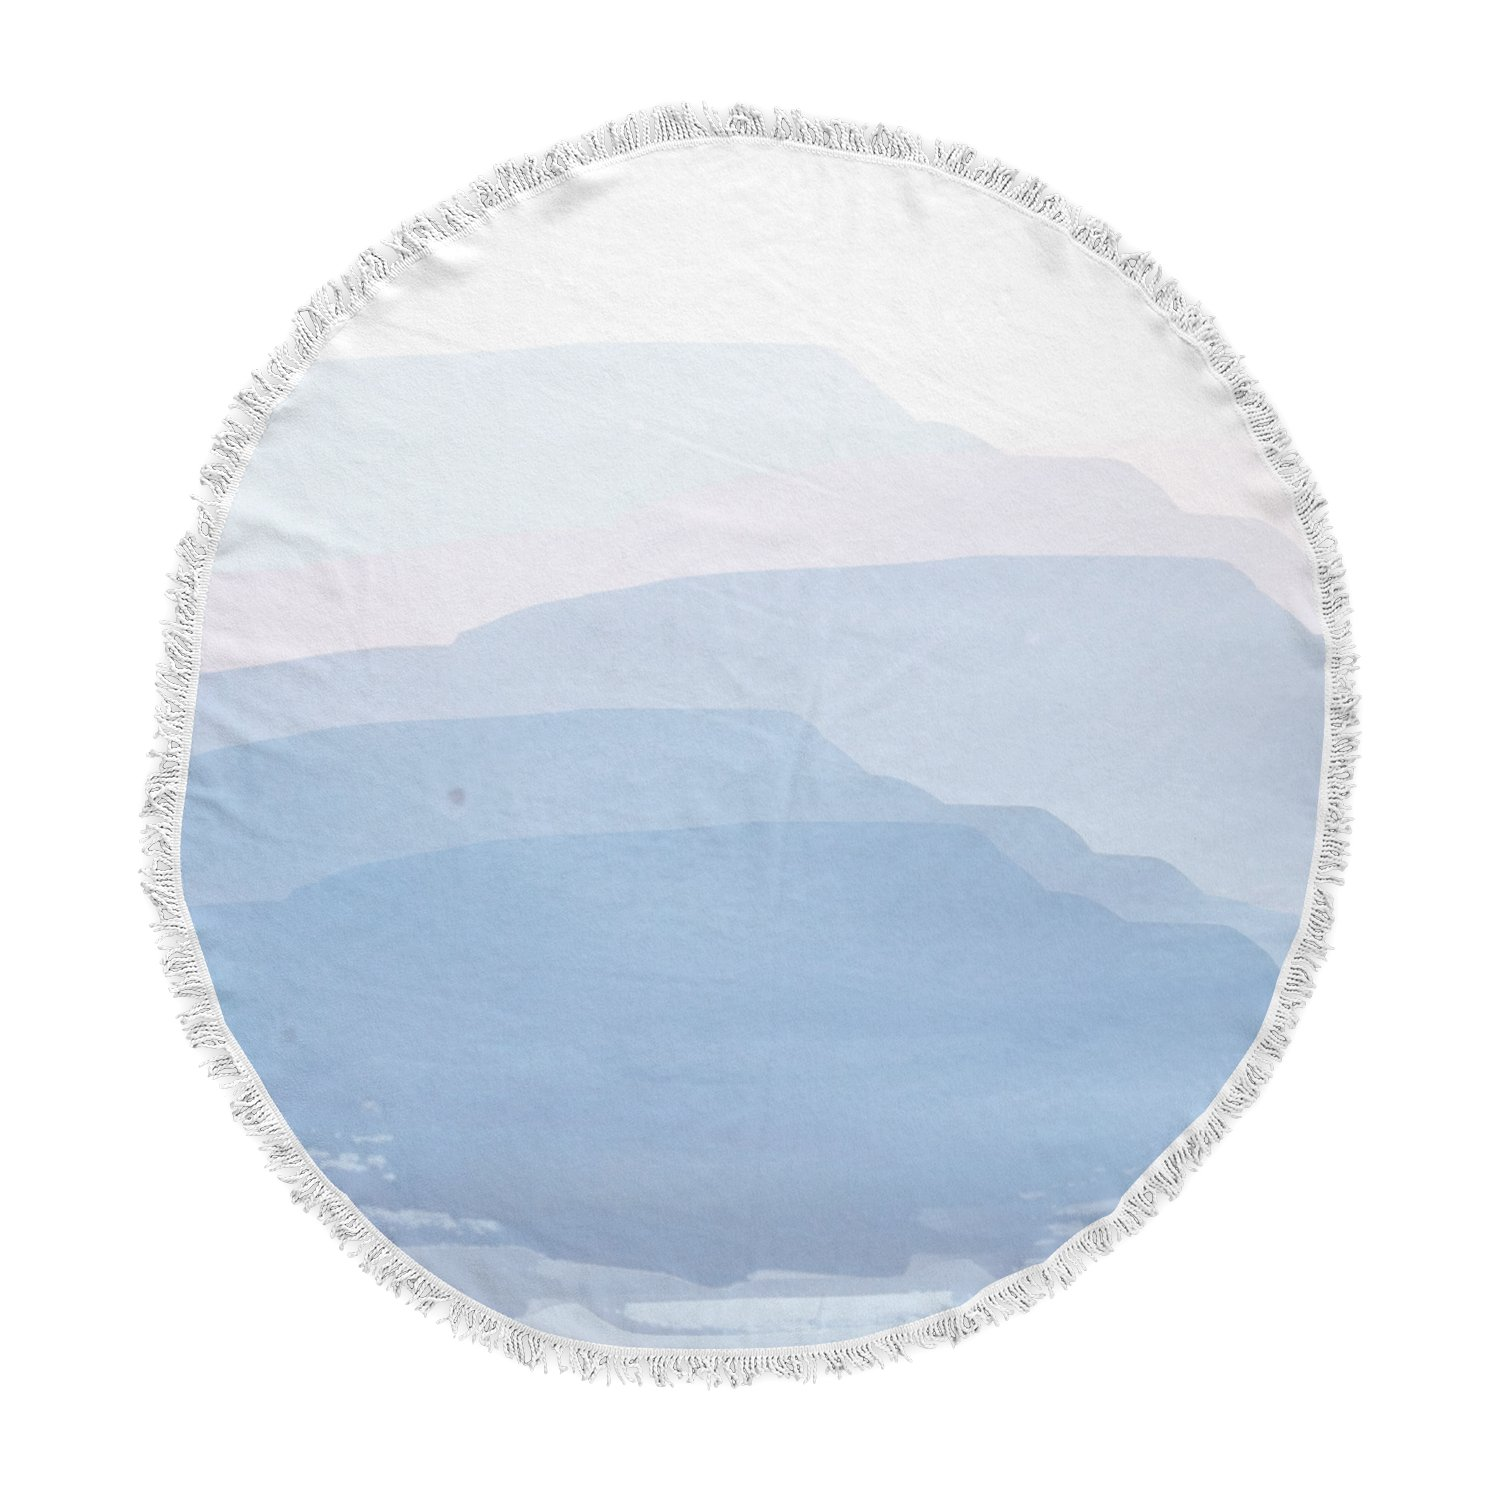 Kess InHouse Jennifer Rizzo Layered Mountains Blue White Abstract Round Beach Towel Blanket